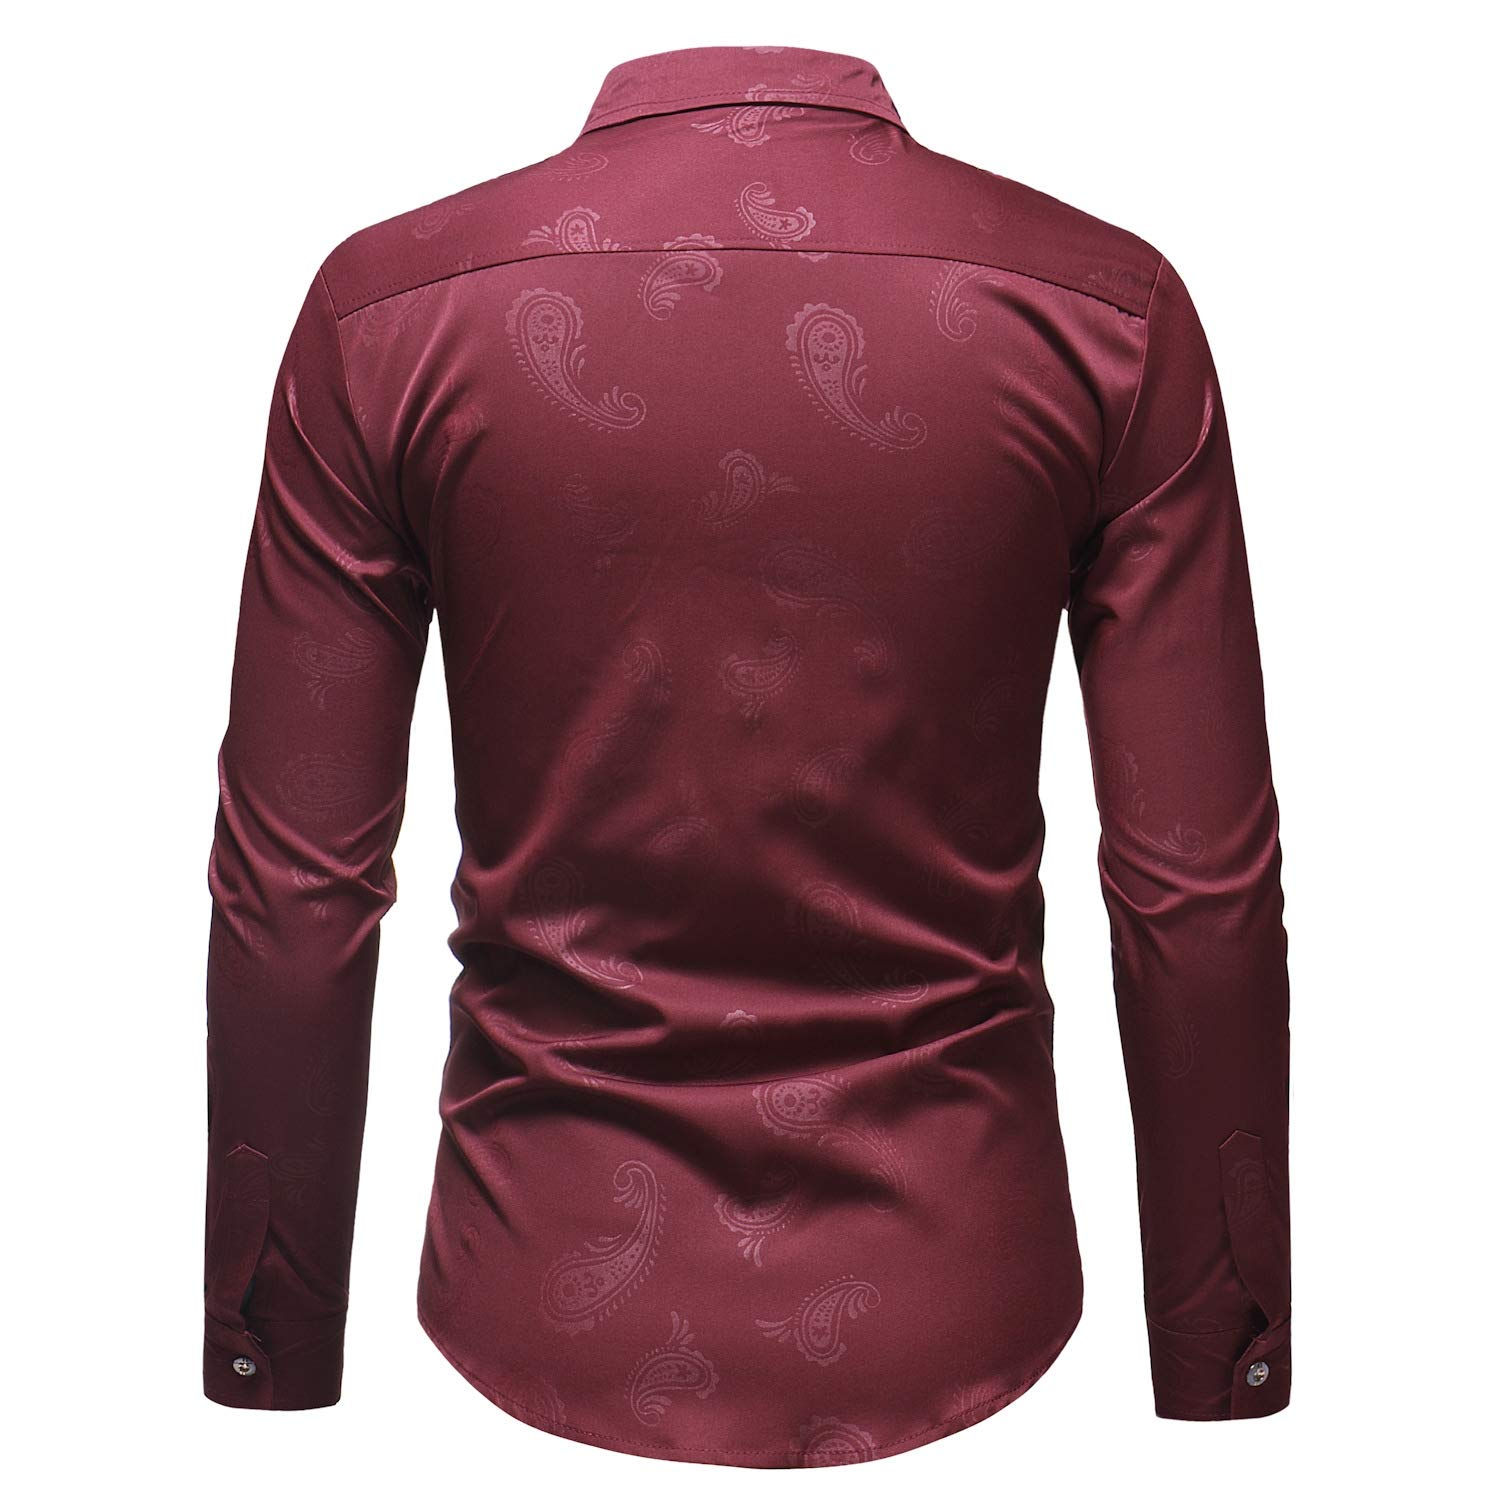 YUNY Men Fit Long-Sleeve Button Down Vogue Floral Print Dress Shirts Wine Red M